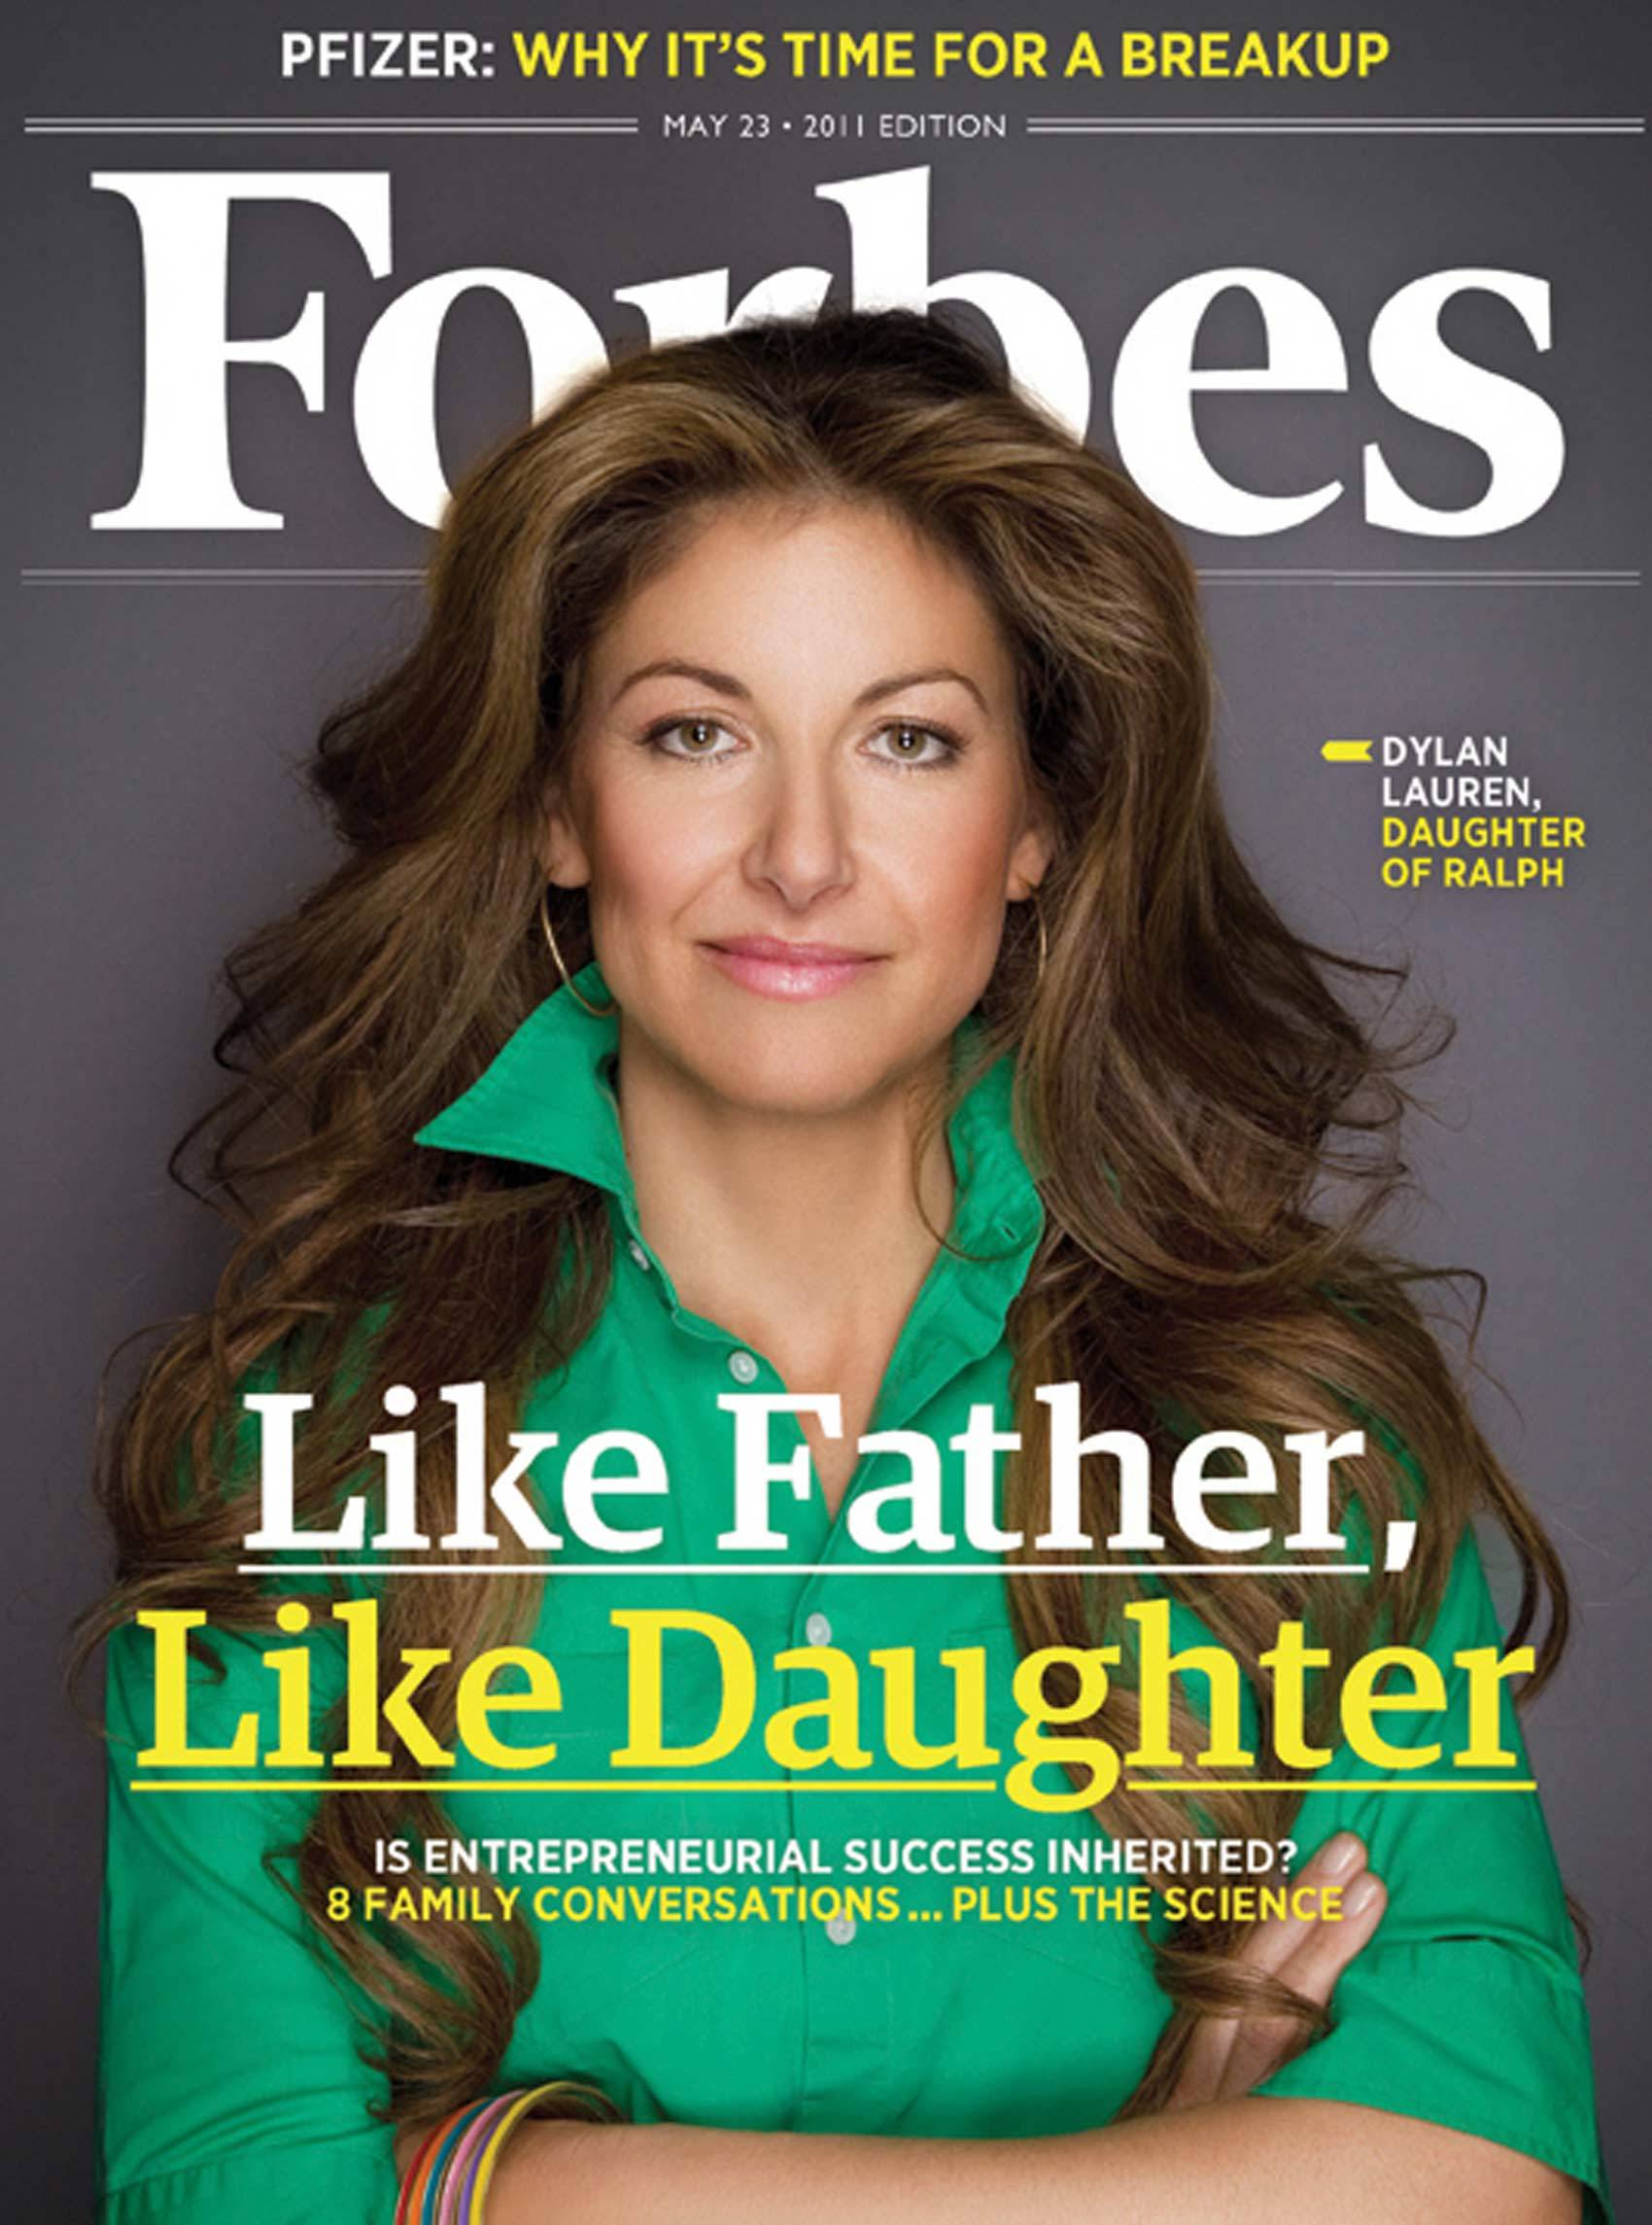 Forbes_cover052311-2.jpg